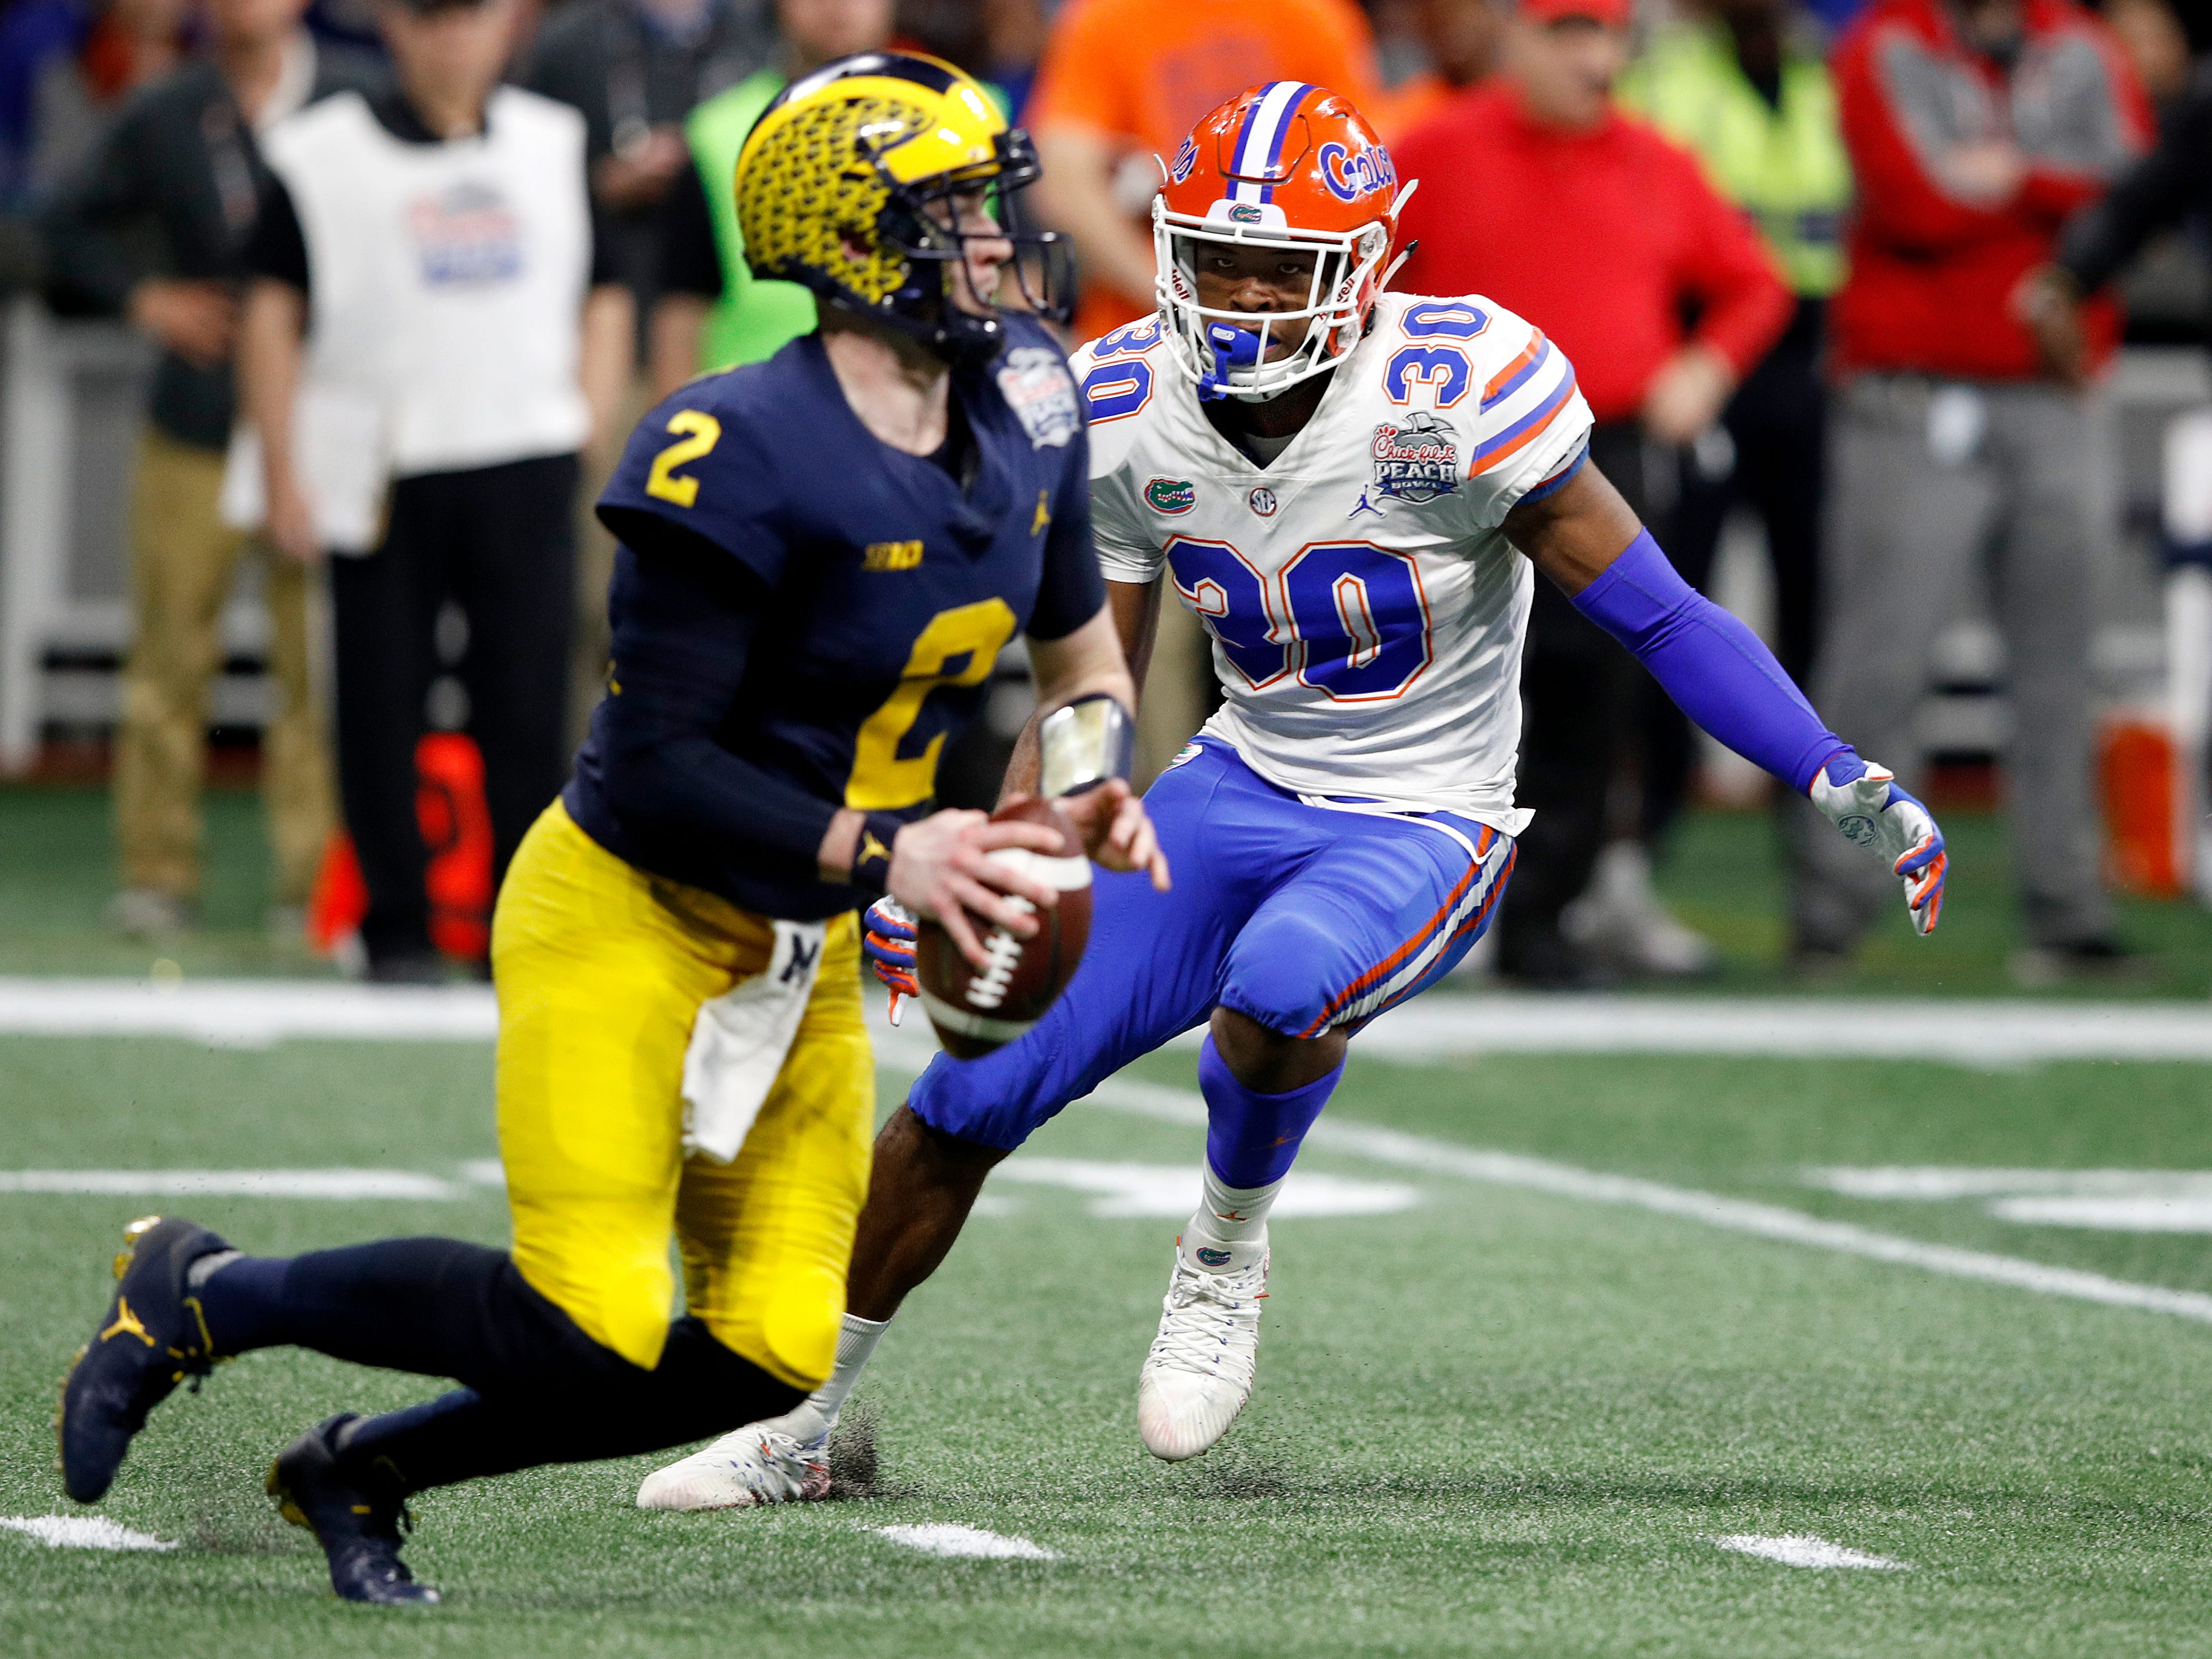 Michigan QB Shea Patterson is sacked by Florida's Amari Burney in the third quarter during the first half on Saturday, Dec. 29, 2018, in Atlanta.